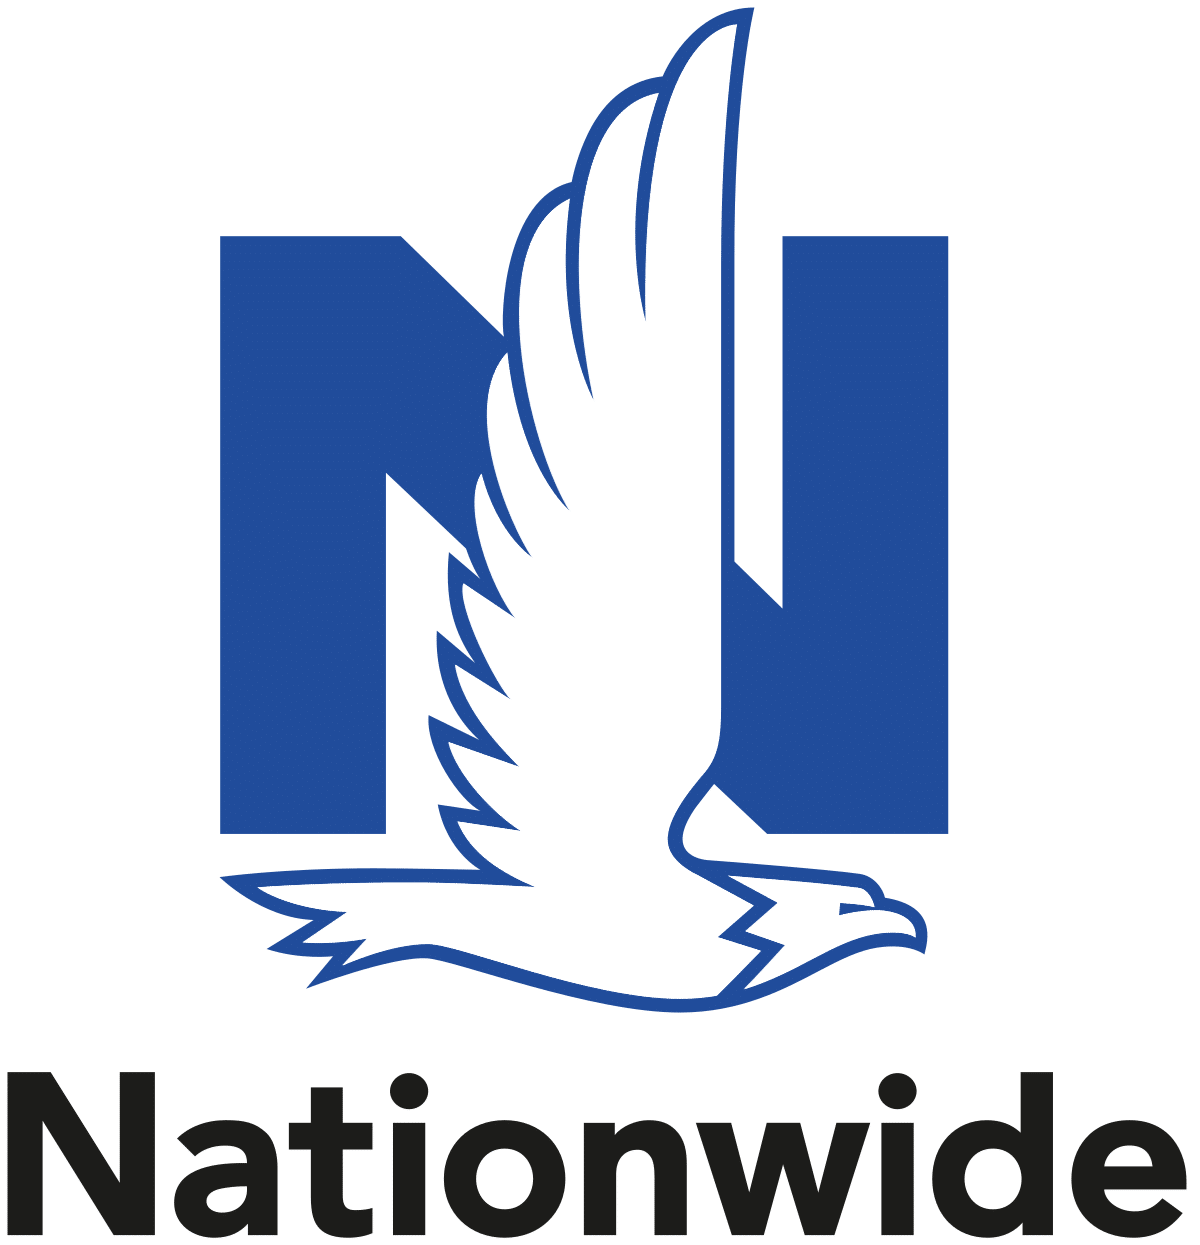 Nationwide Life Insurance logo